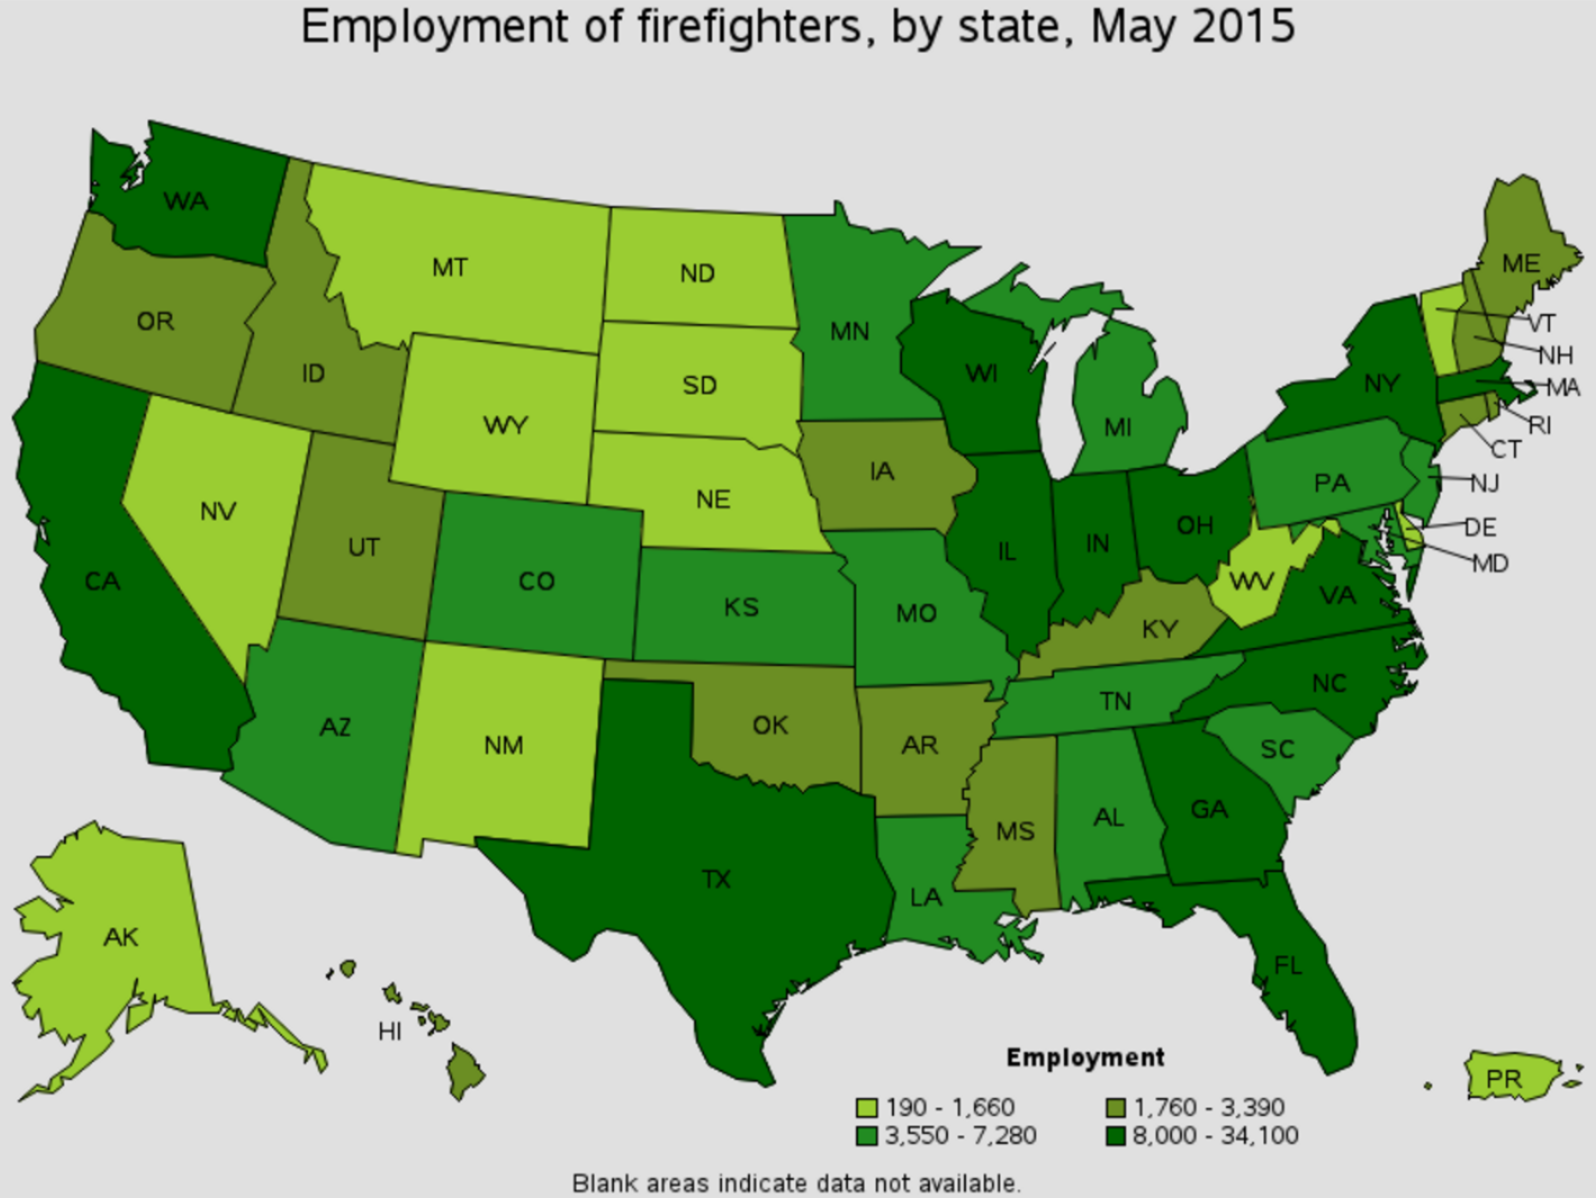 firefighter job outlook by state Selbyville Delaware